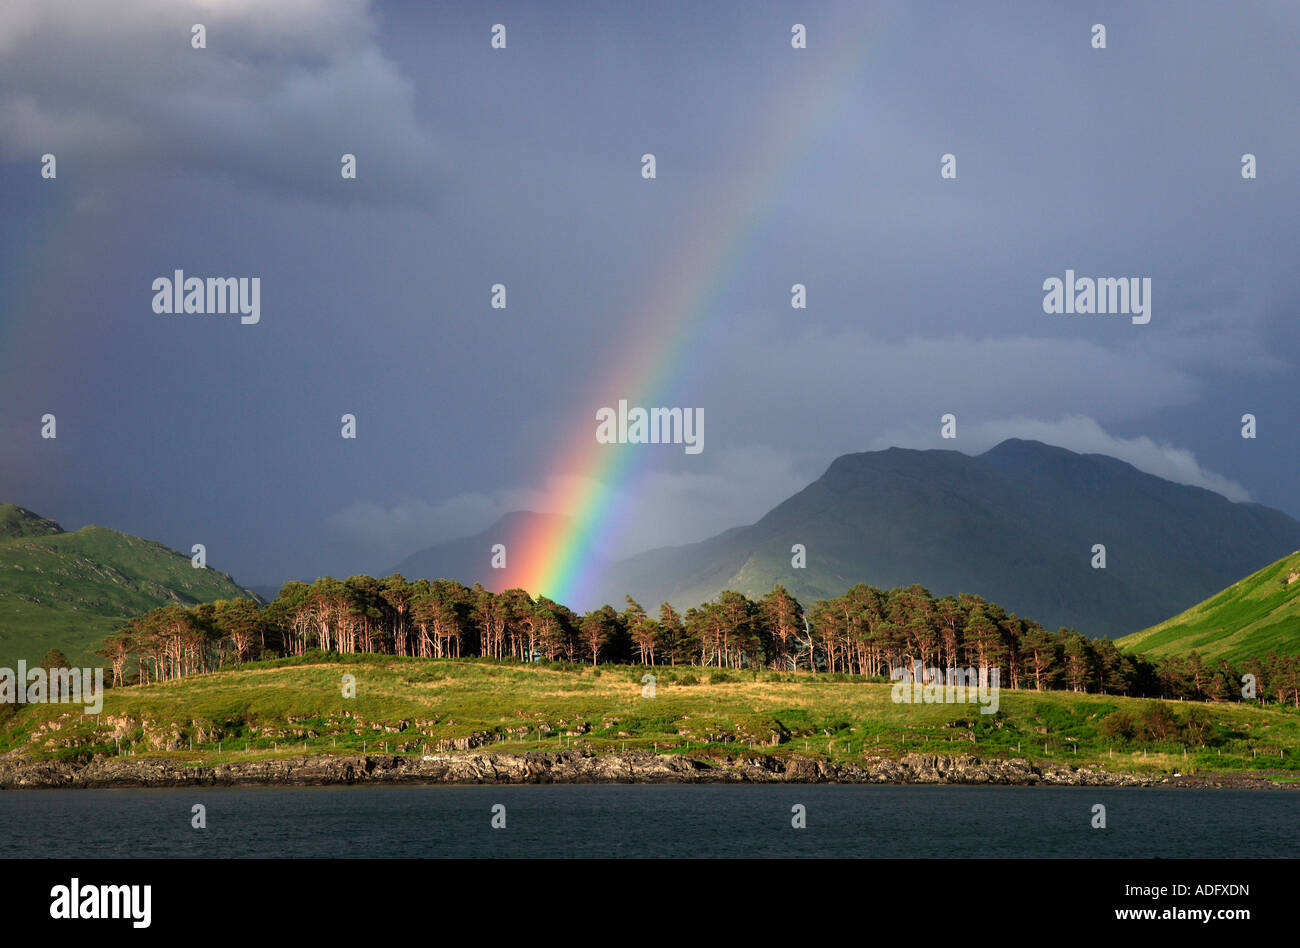 A RAINBOW AND DARK BROODING SKY MAKE A DRAMATIC BACKDROP TO INVERIE KNOYDART. - Stock Image